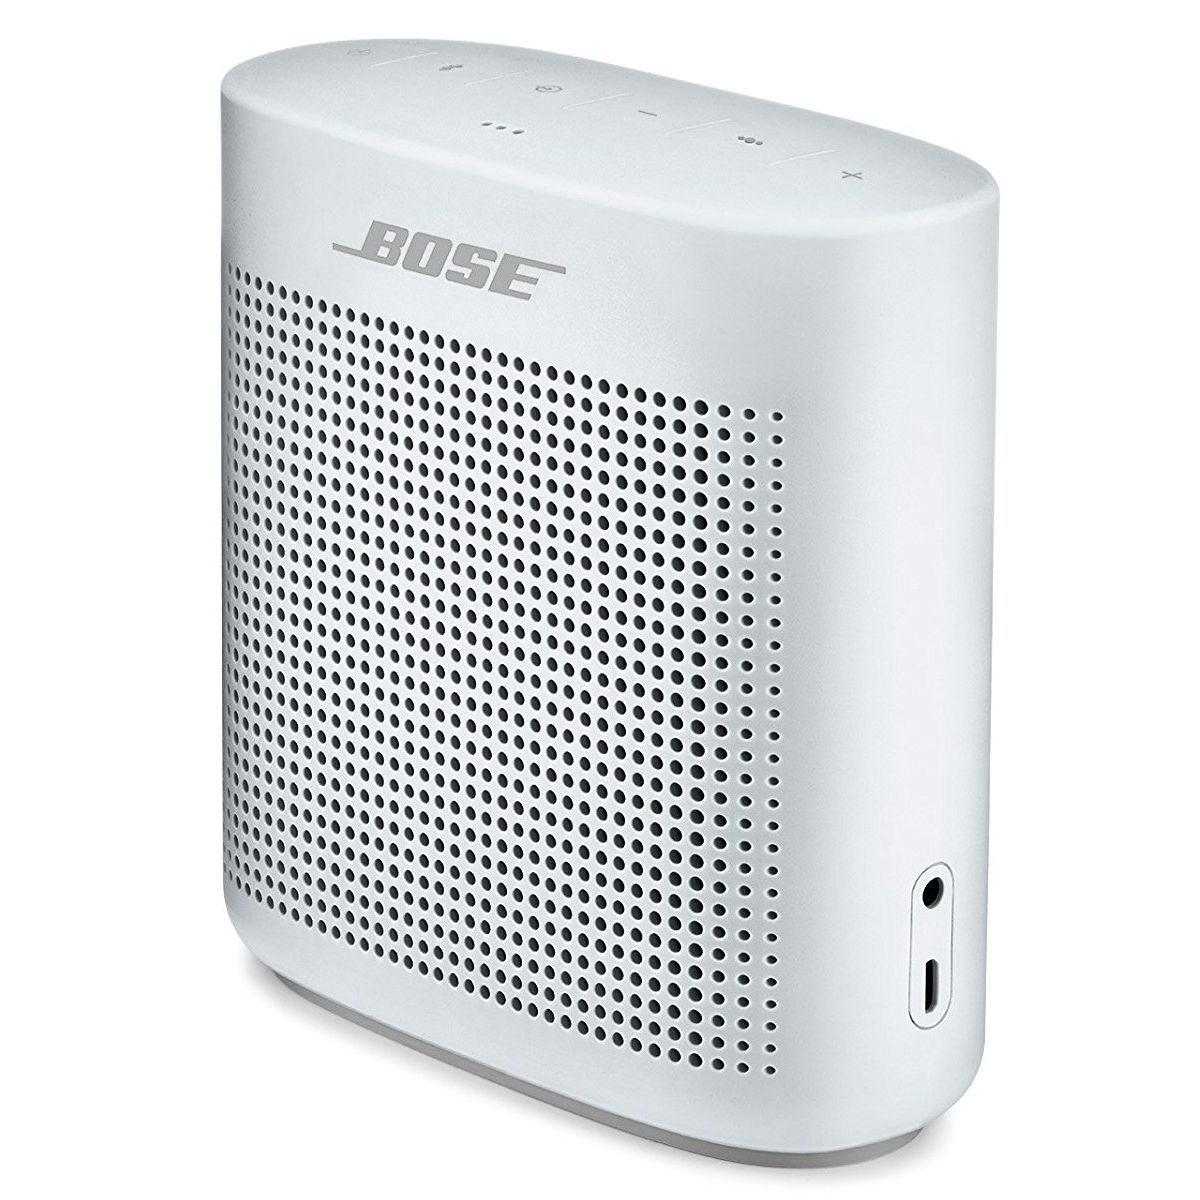 bose soundlink color ii blanc dock enceinte bluetooth bose sur ldlc. Black Bedroom Furniture Sets. Home Design Ideas